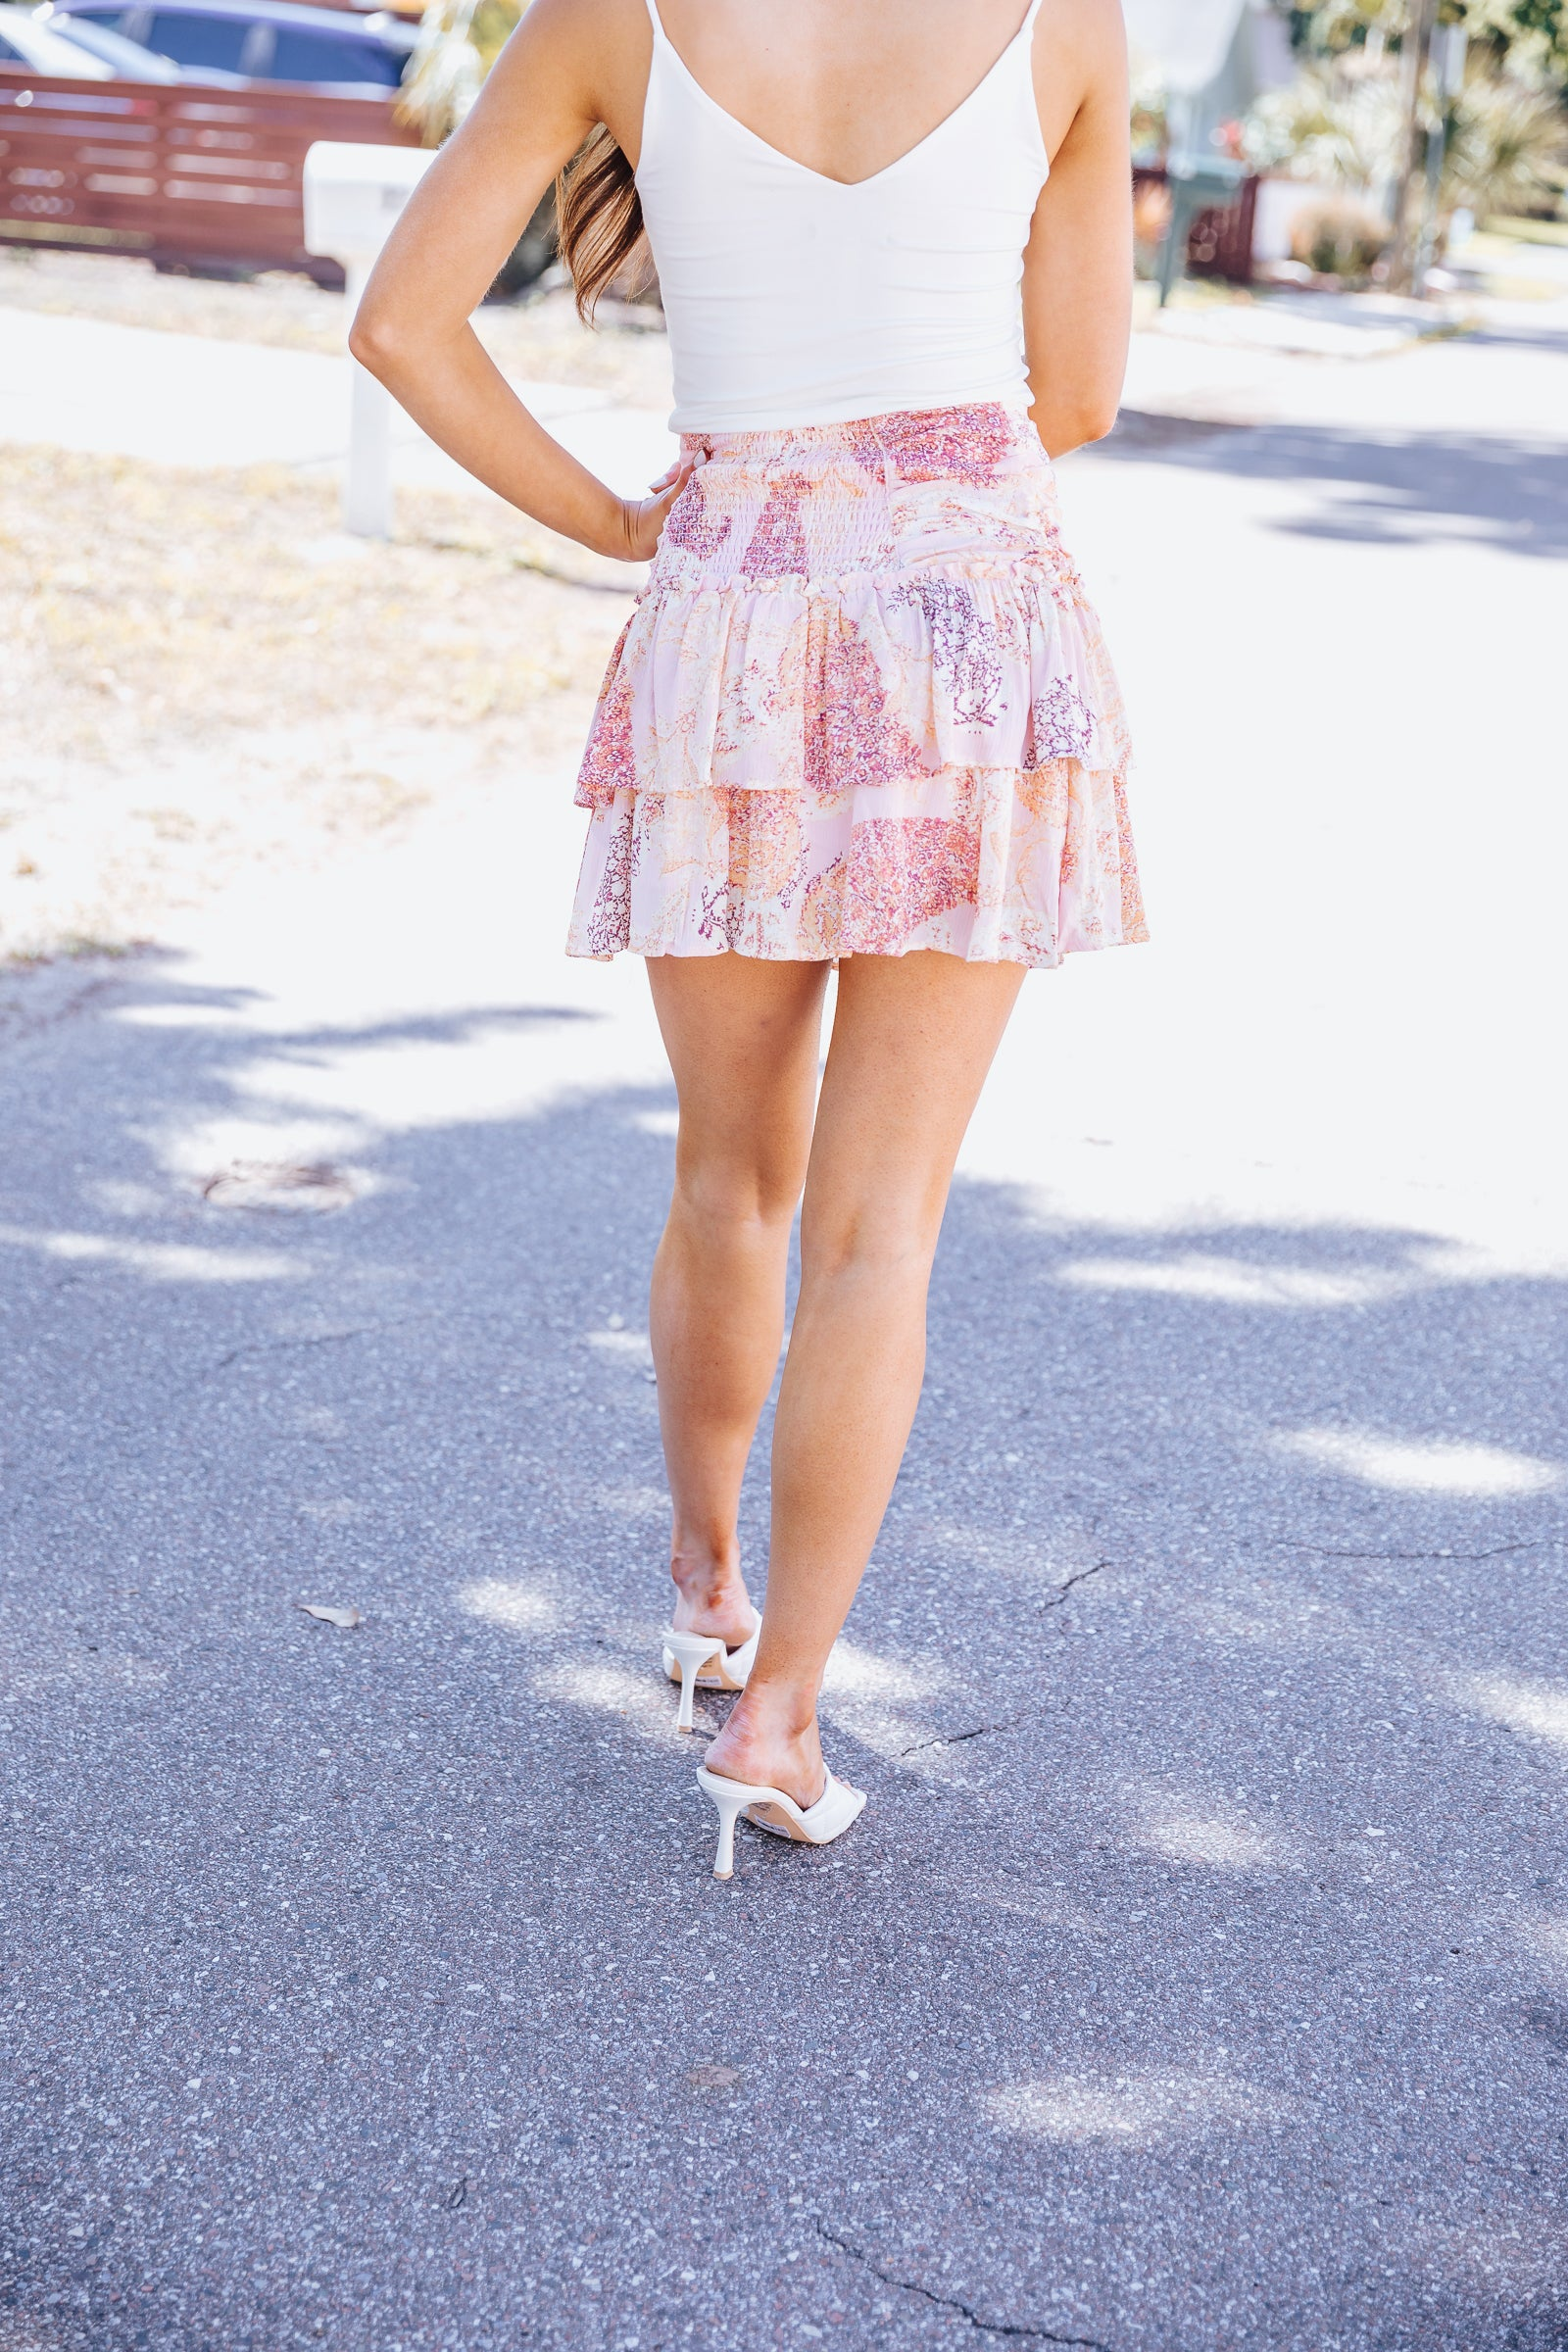 This patterned mini skirt has a gathered and gently ruched waist and meets a layered and ruffle hemmed silhouette.